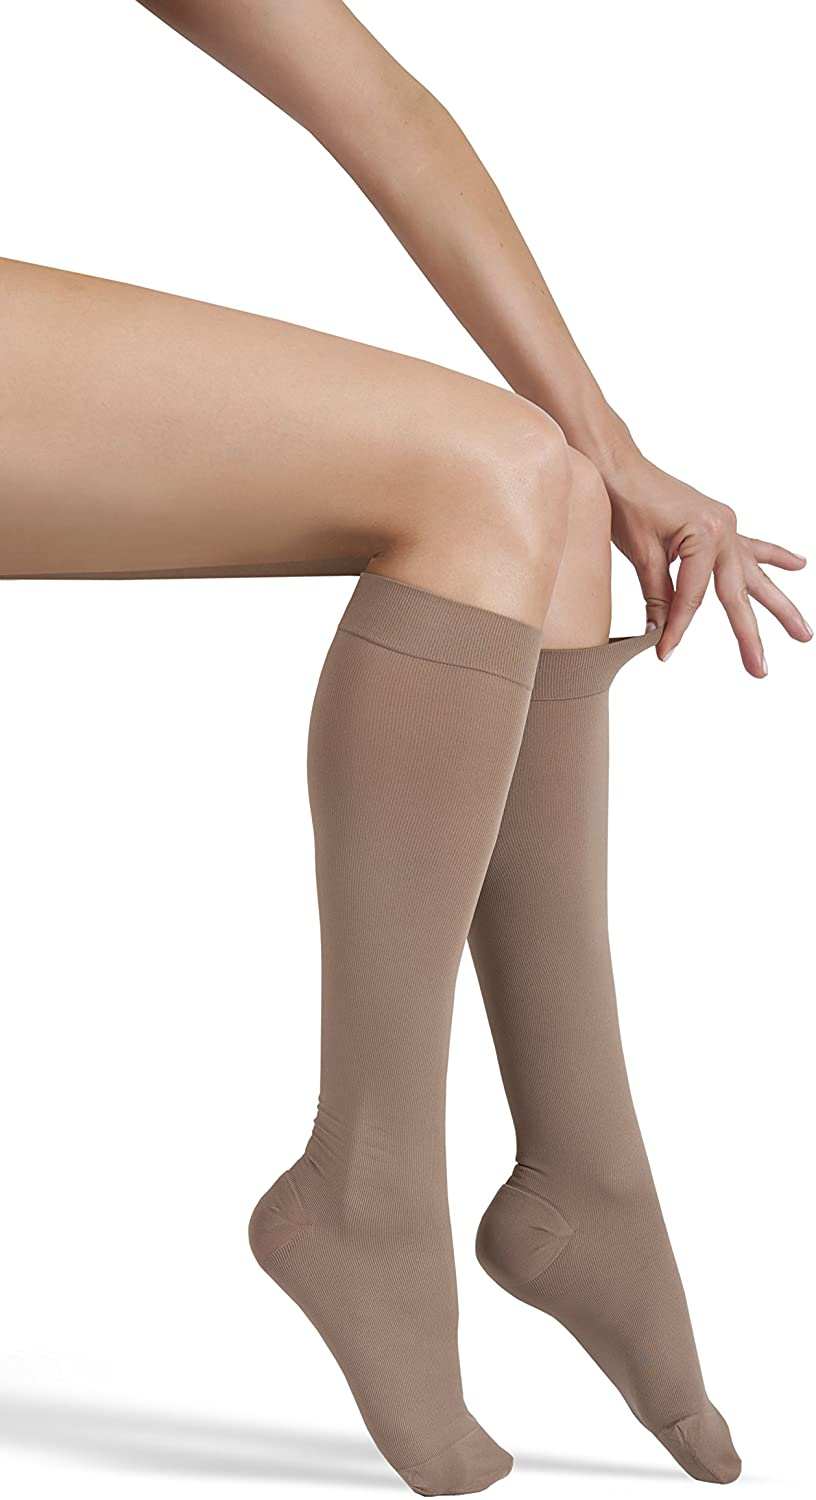 GABRIALLA Graduated Microfiber Compression Stockings, Calf Knee Highs. Made in USA. Varicose Vein Treatment, Improves Blood Circulation in Legs and Feet (25-35 mmHg) X-Large | Beige